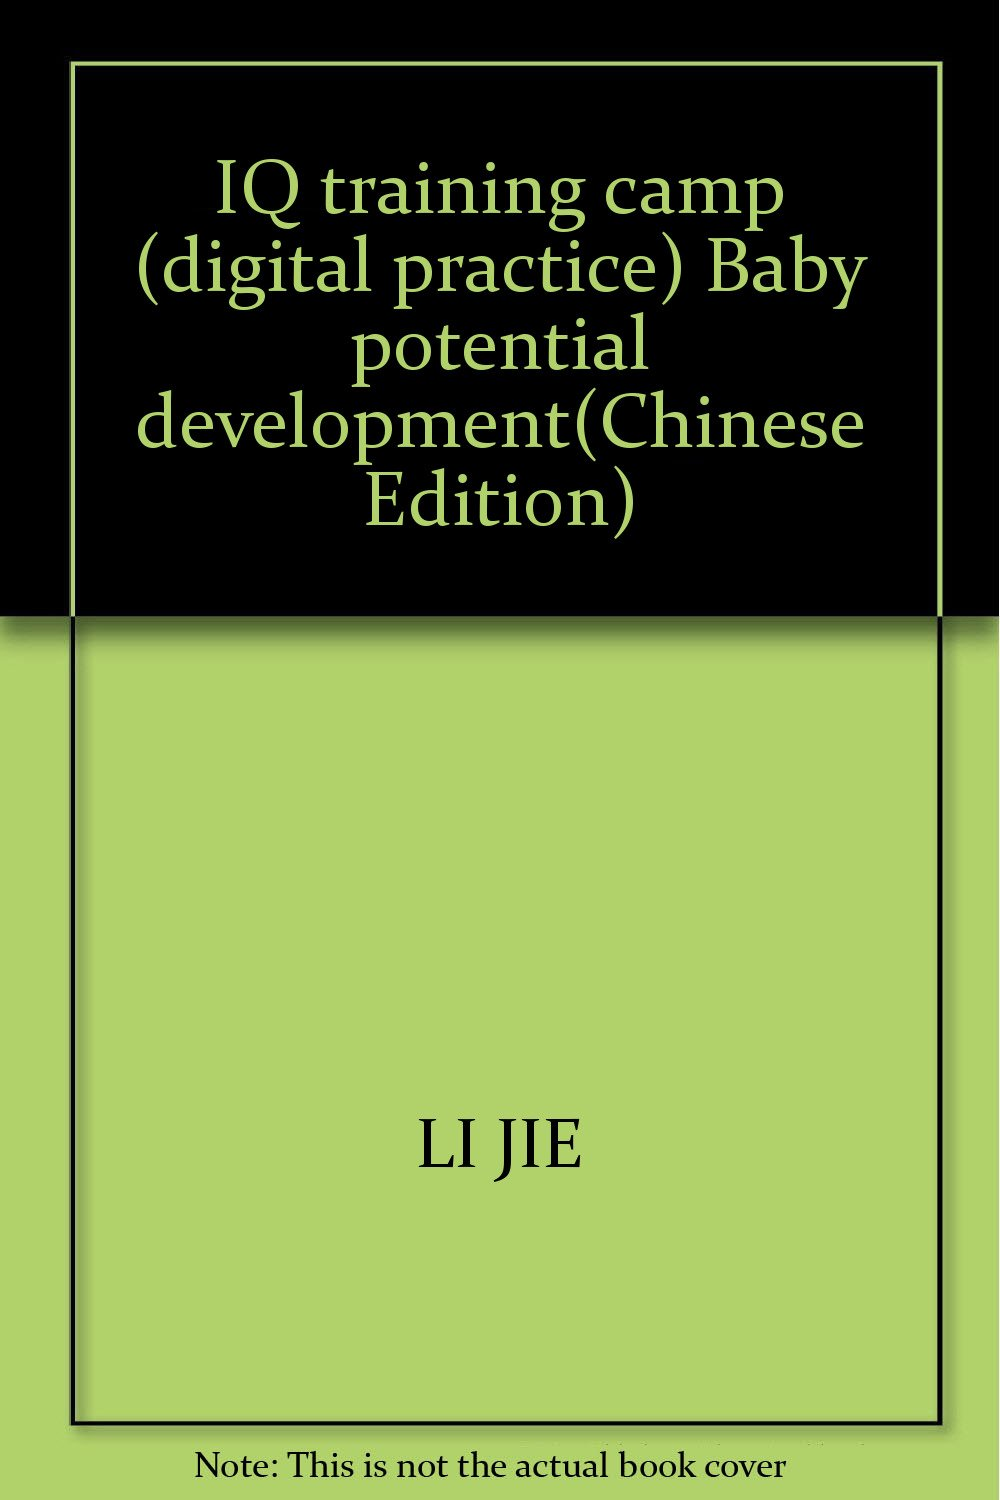 Download IQ training camp (digital practice) Baby potential development(Chinese Edition) ebook